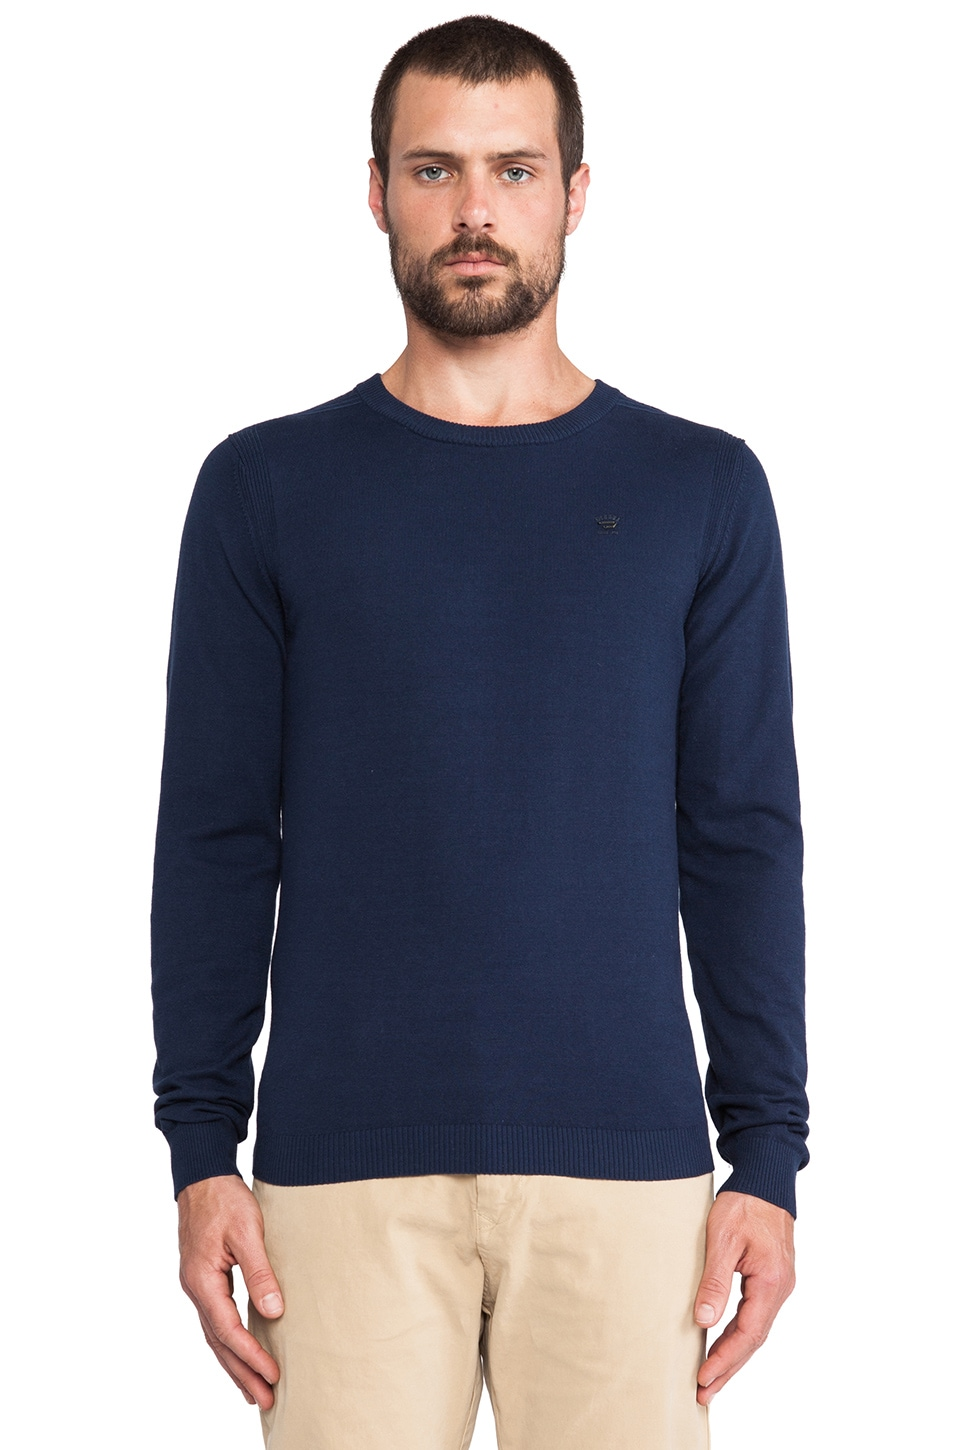 Diesel Manik Sweater in Midnight